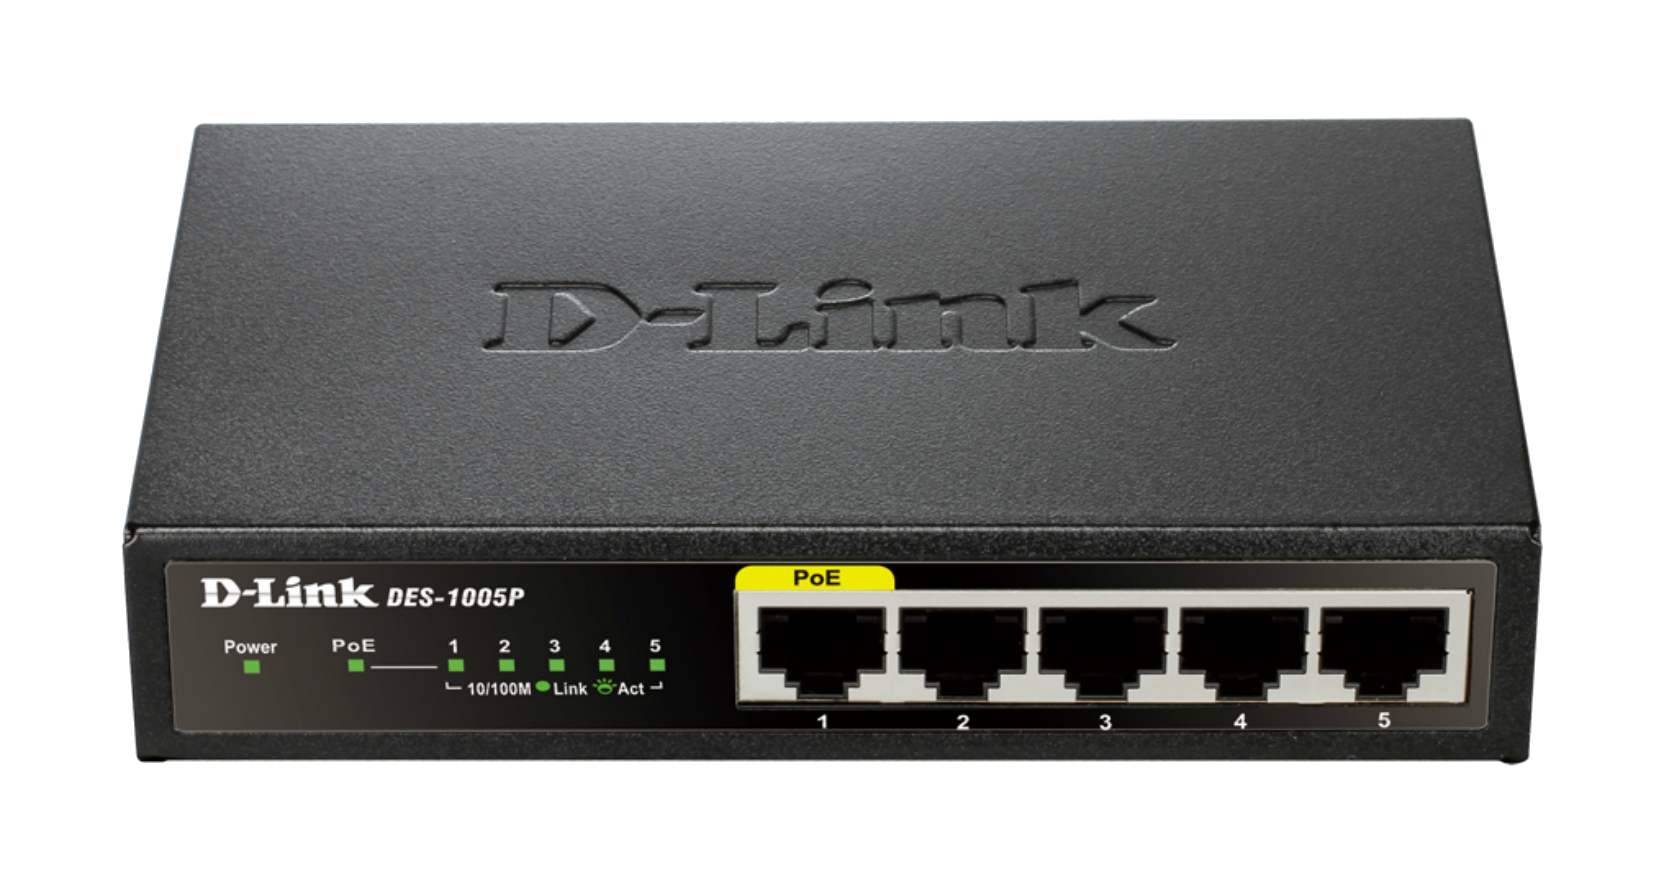 D-Link DES-1005P 5-Port Fast Ethernet PoE Desktop Switch